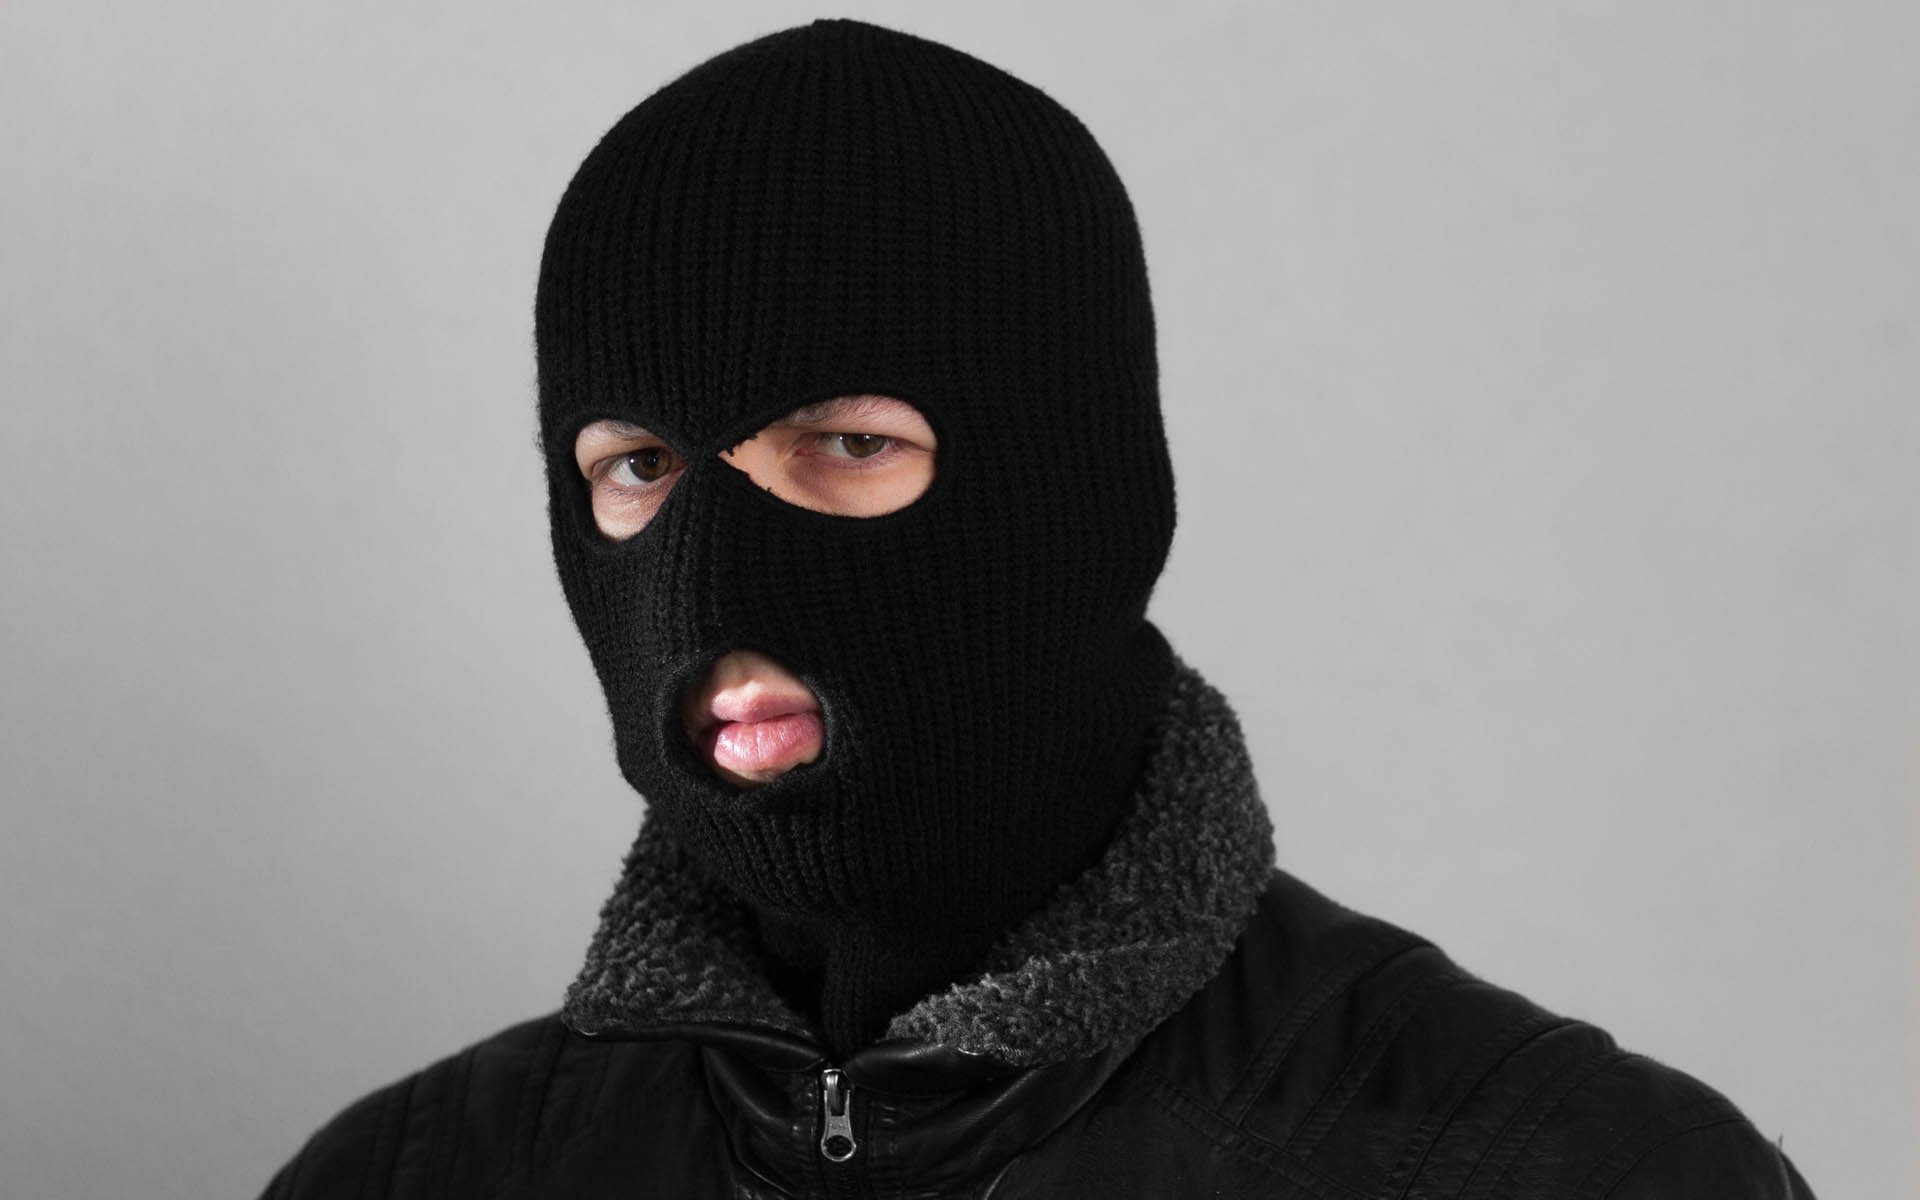 Armed Robbers Enter Home, Force Bitcoin Trader to Transfer Funds